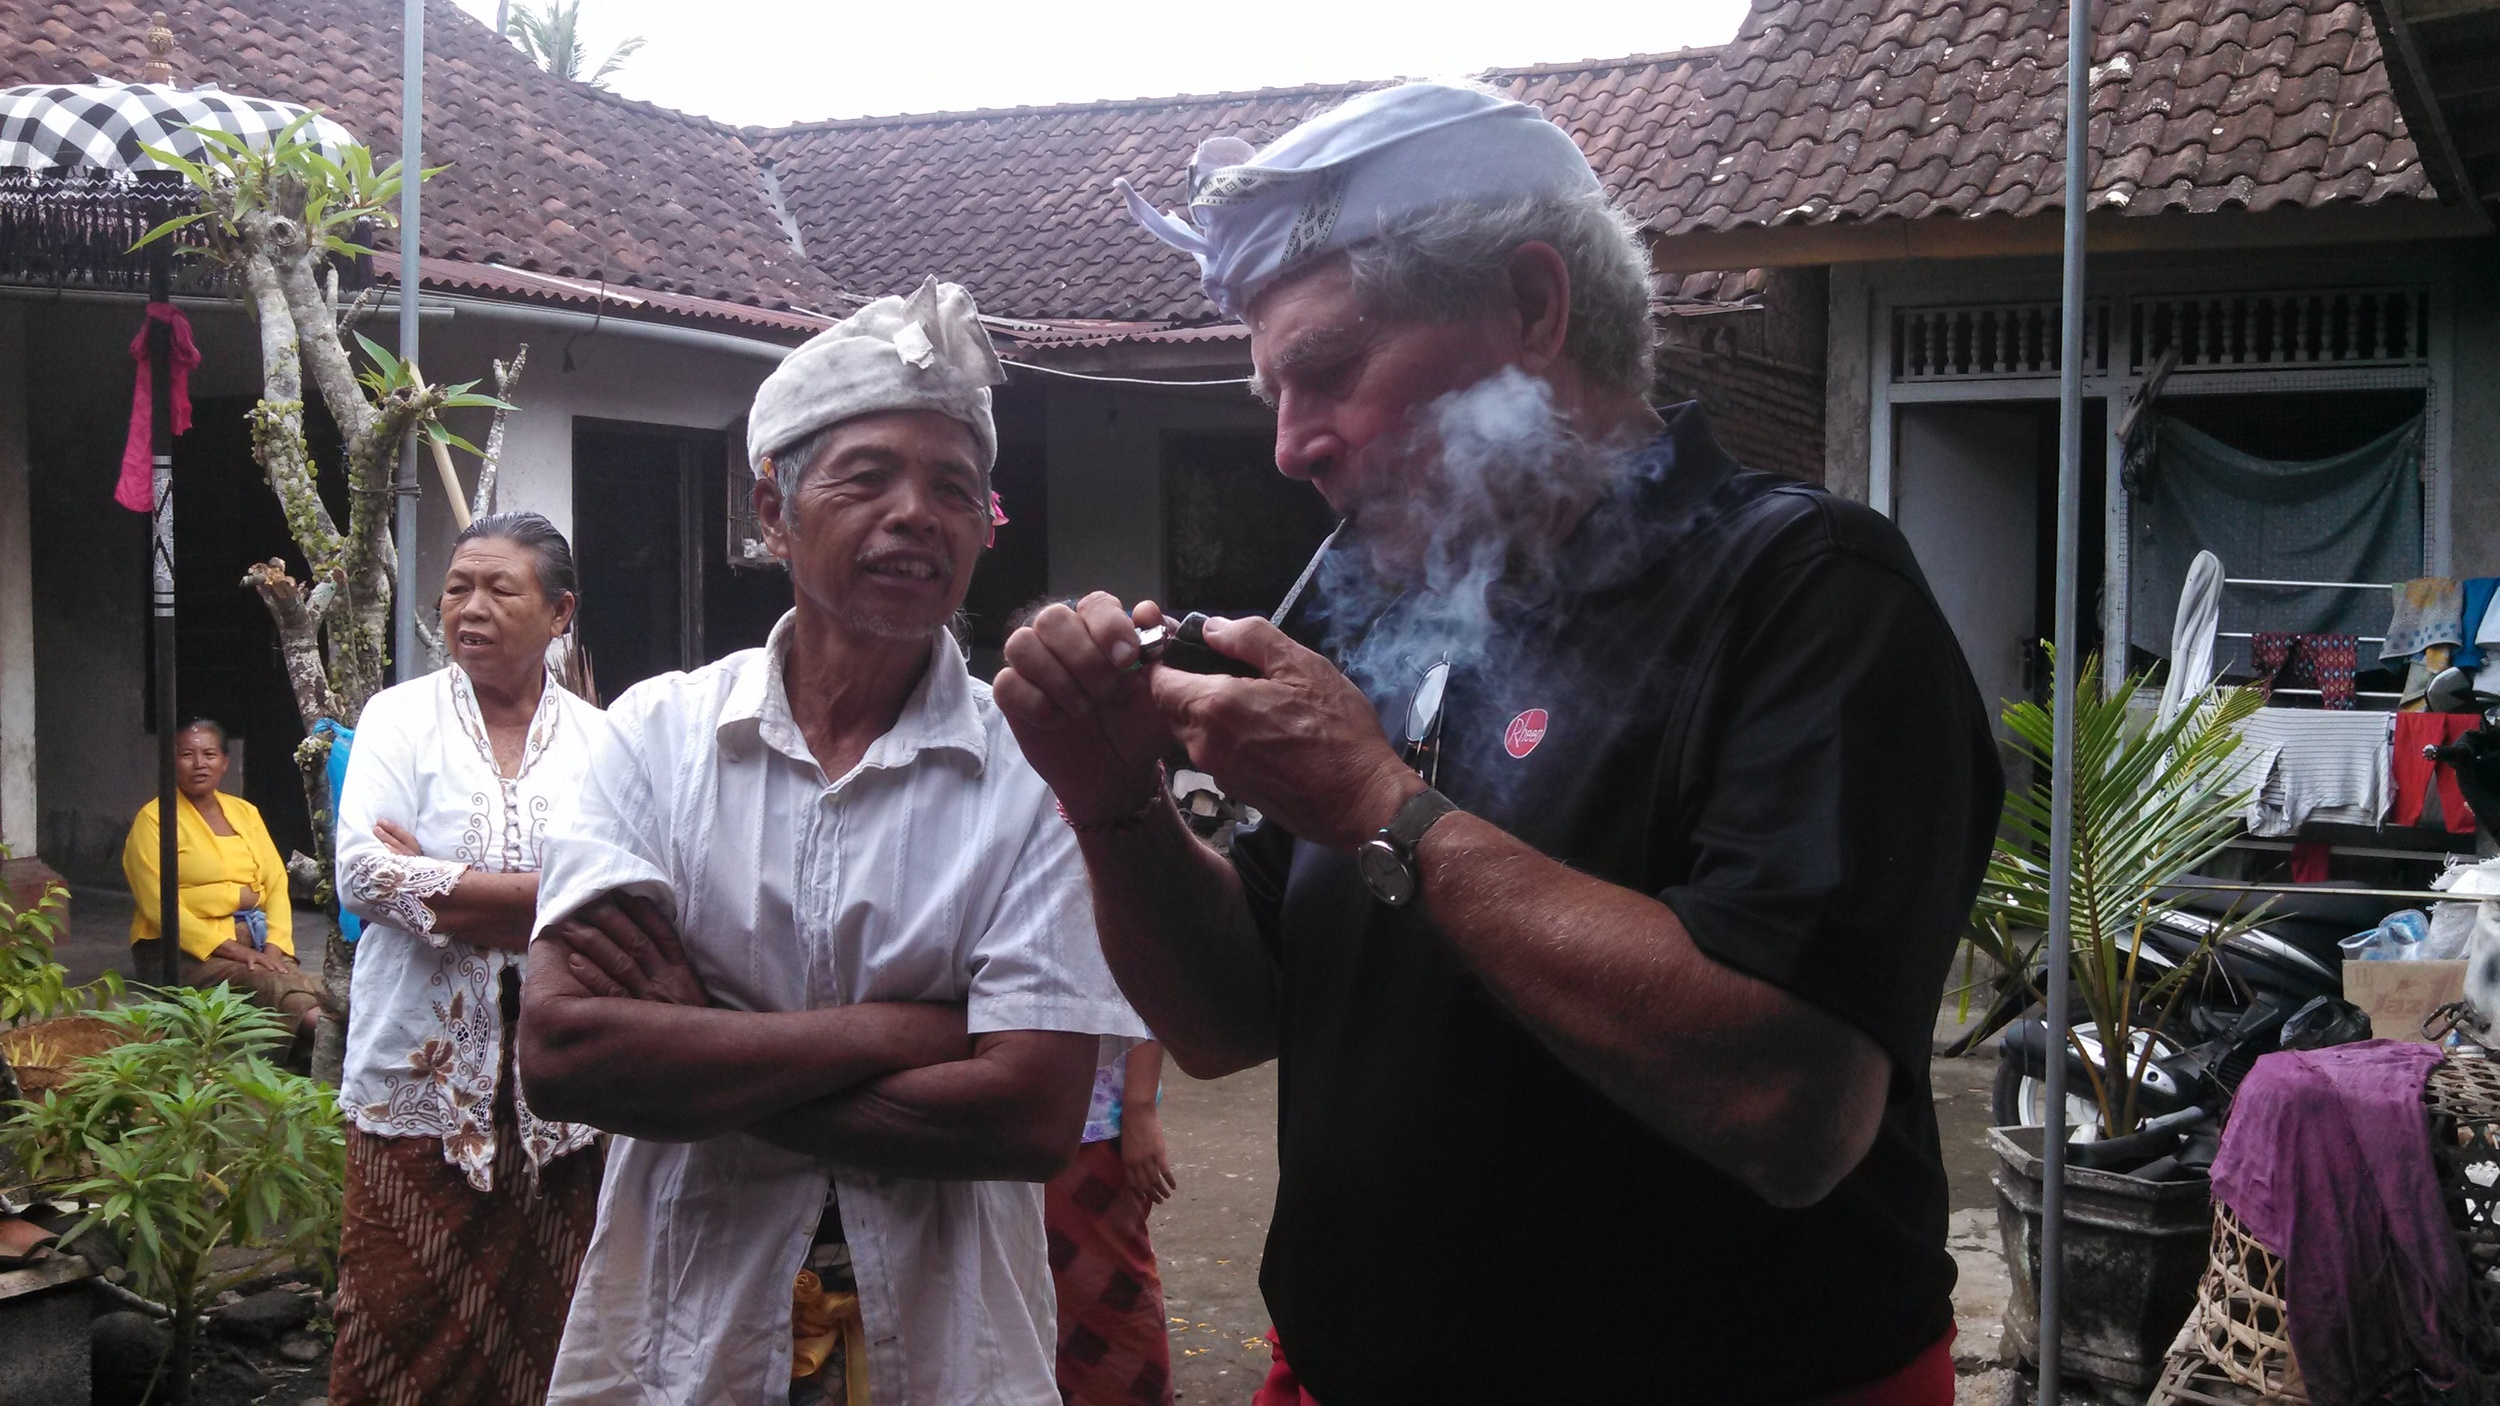 While waiting for the second ceremony, we sat and chatted again. Everyone was amazed by Rich smoking his pipe. Never seen a pipe before!